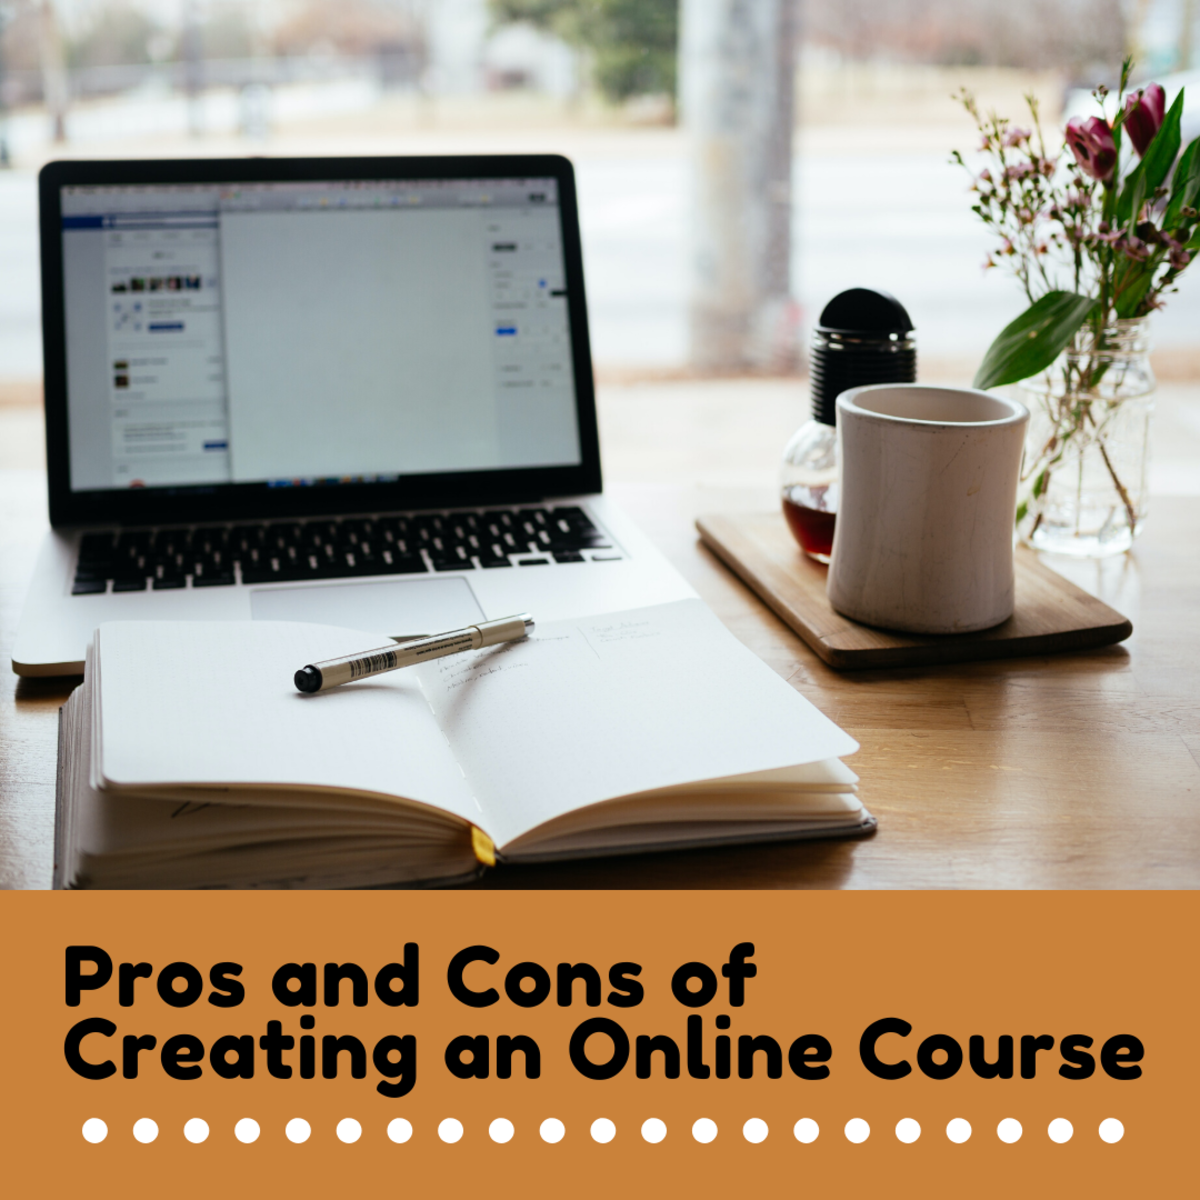 Read on to learn if creating an online course is the right decision for you.